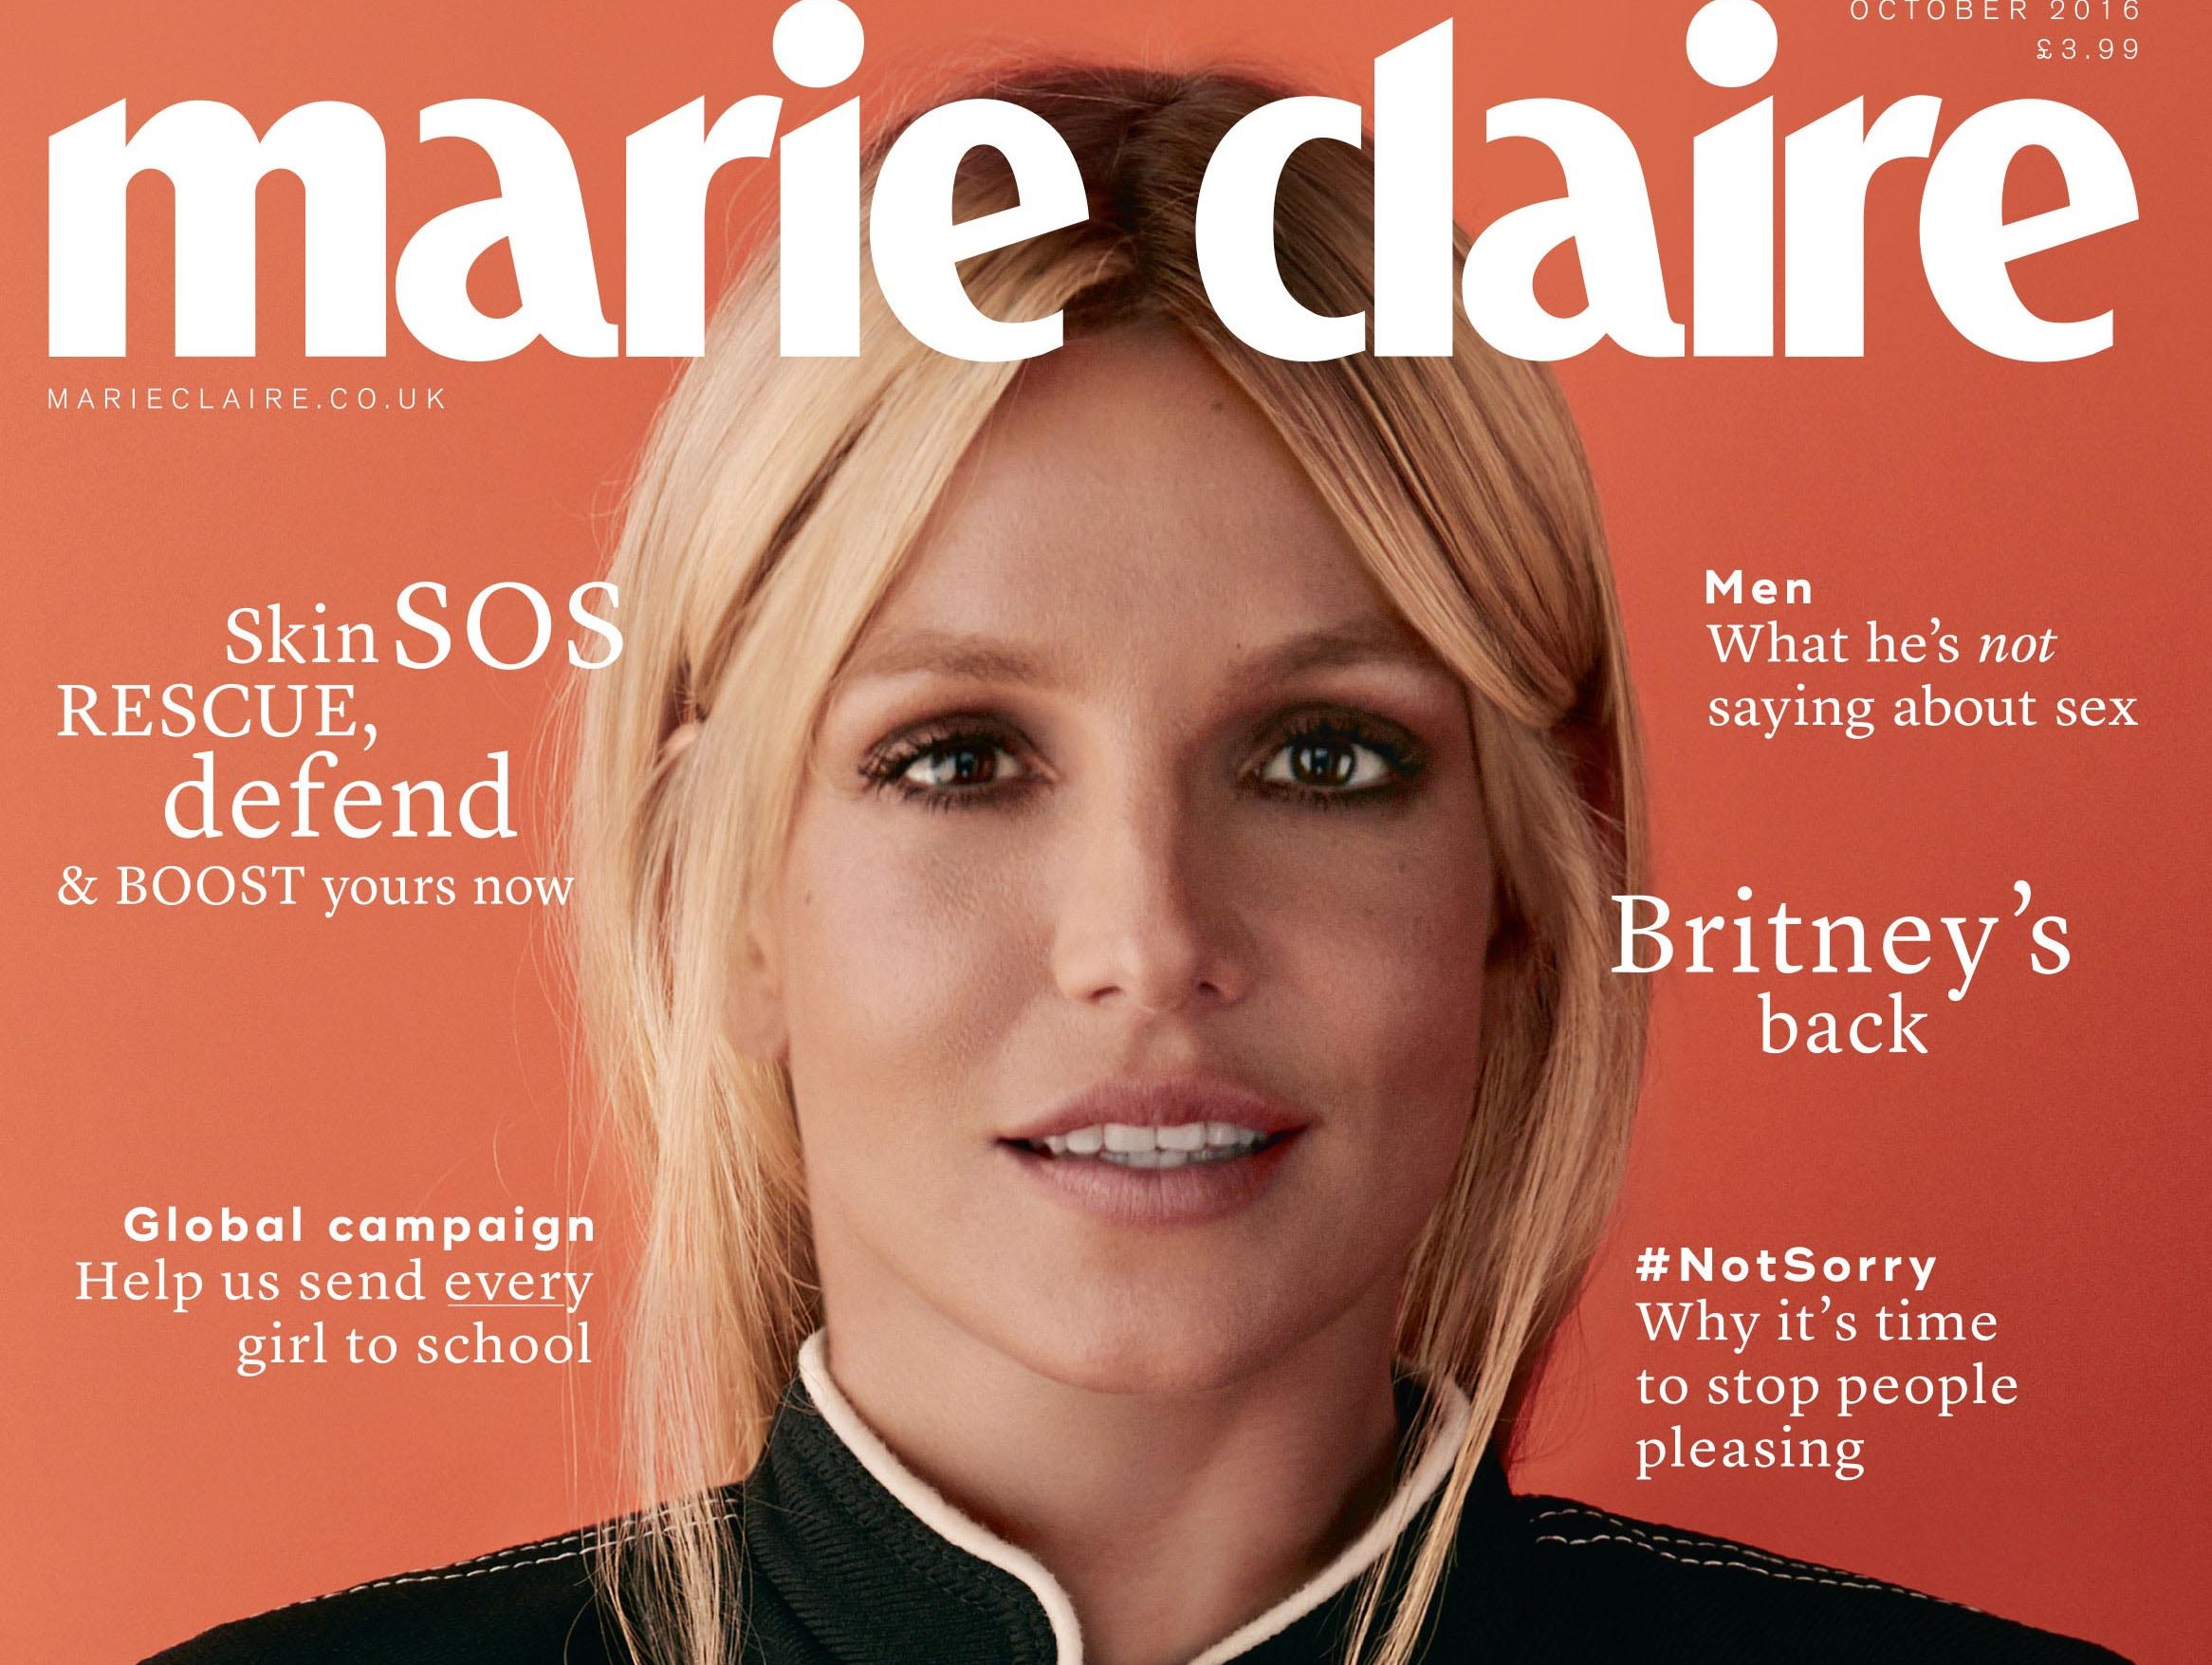 Marie claire expands digital team in bid to double uk web figures womens monthly marie claire has expanded its digital team creating three new editorial roles as it looks to double its online reach to more than two publicscrutiny Gallery